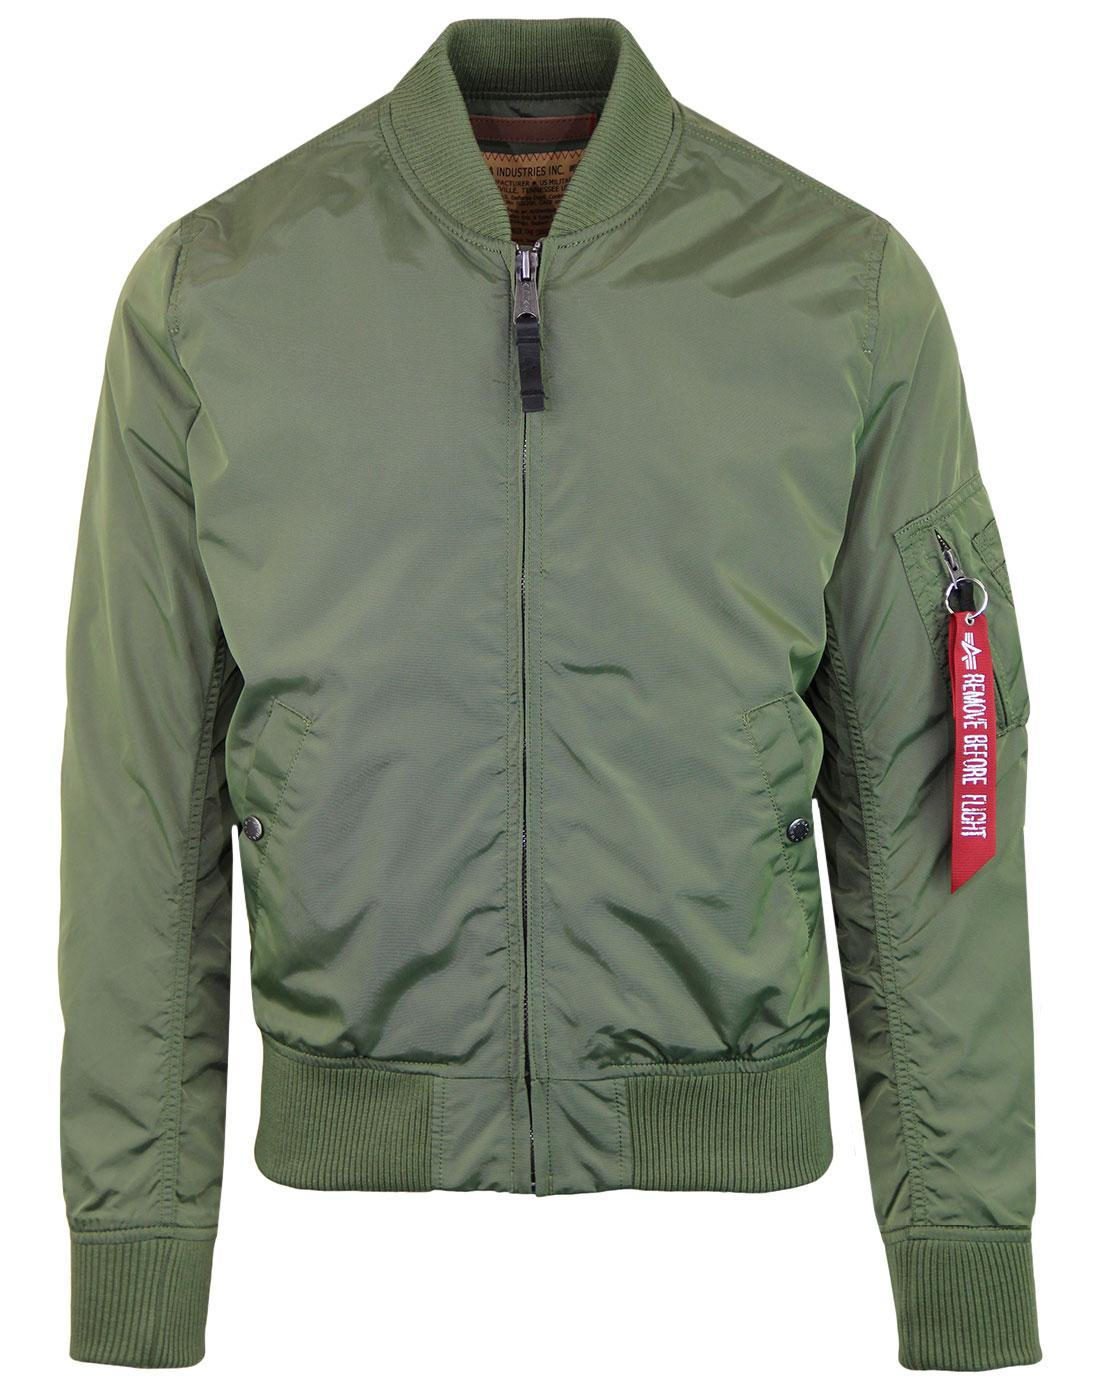 MA1 TT ALPHA INDUSTRIES 70s Mod Bomber Jacket SAGE